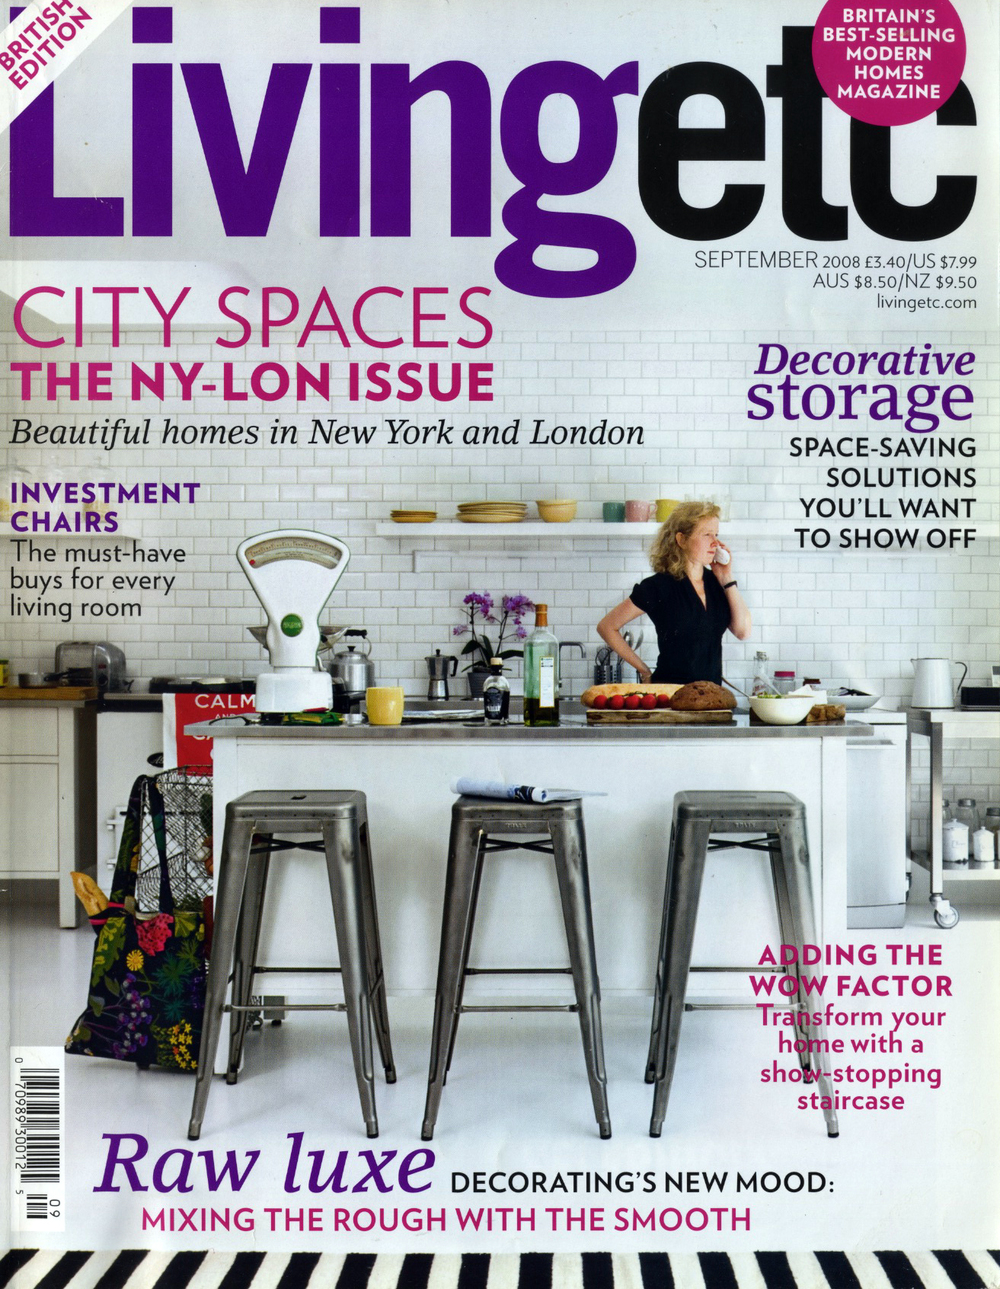 © ghislaine viñas interior design-living ect.09.08_2.jpeg